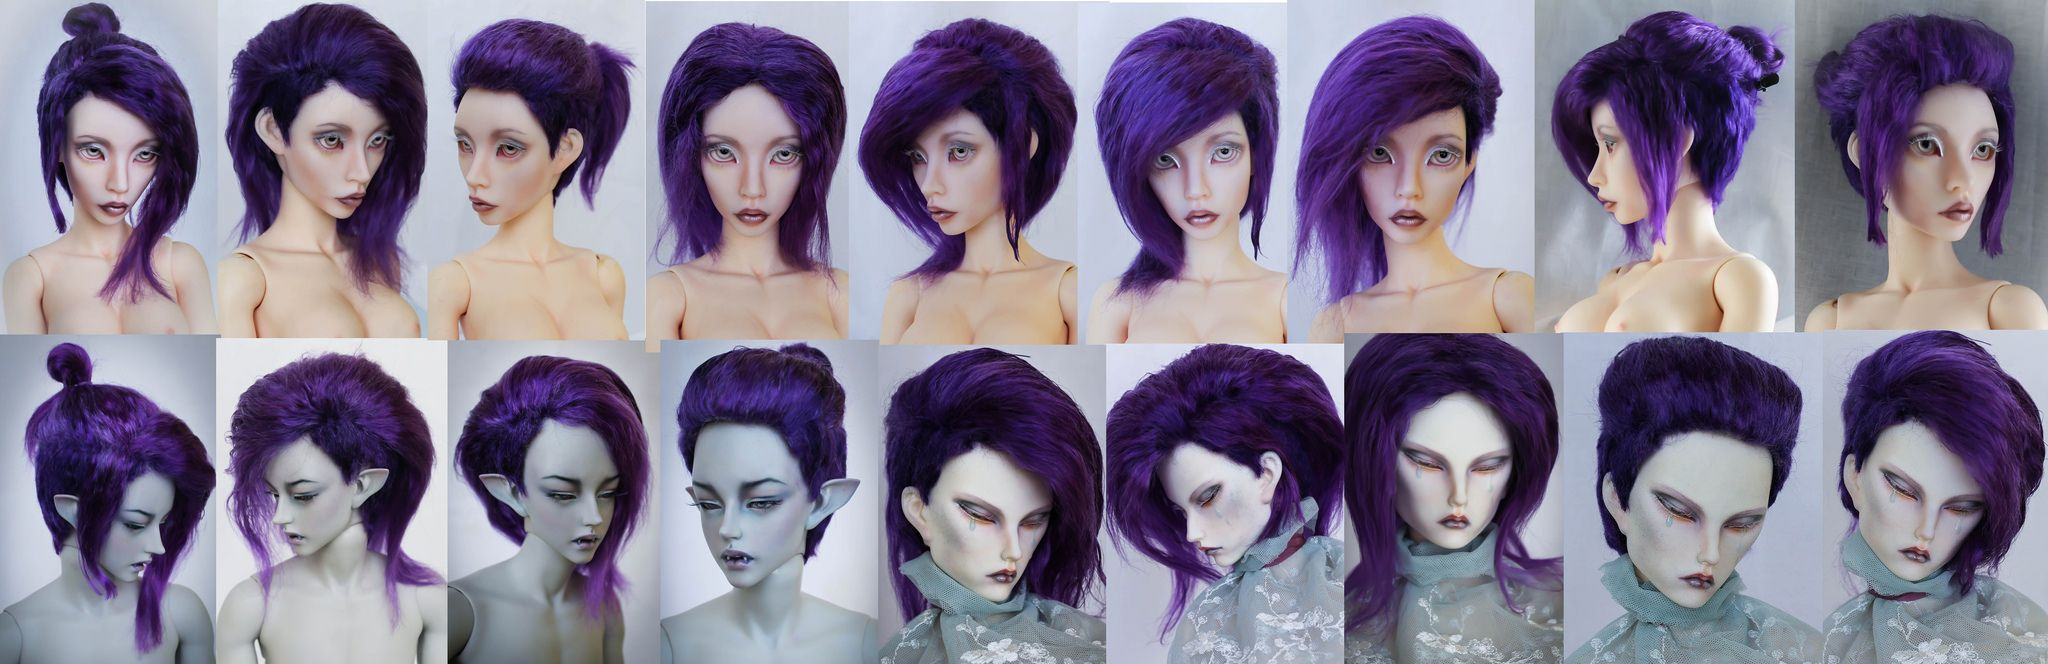 https://flic.kr/p/wm5aYh | commission wig | Angora mohair elastic cup violet color different hairstyles in one wig